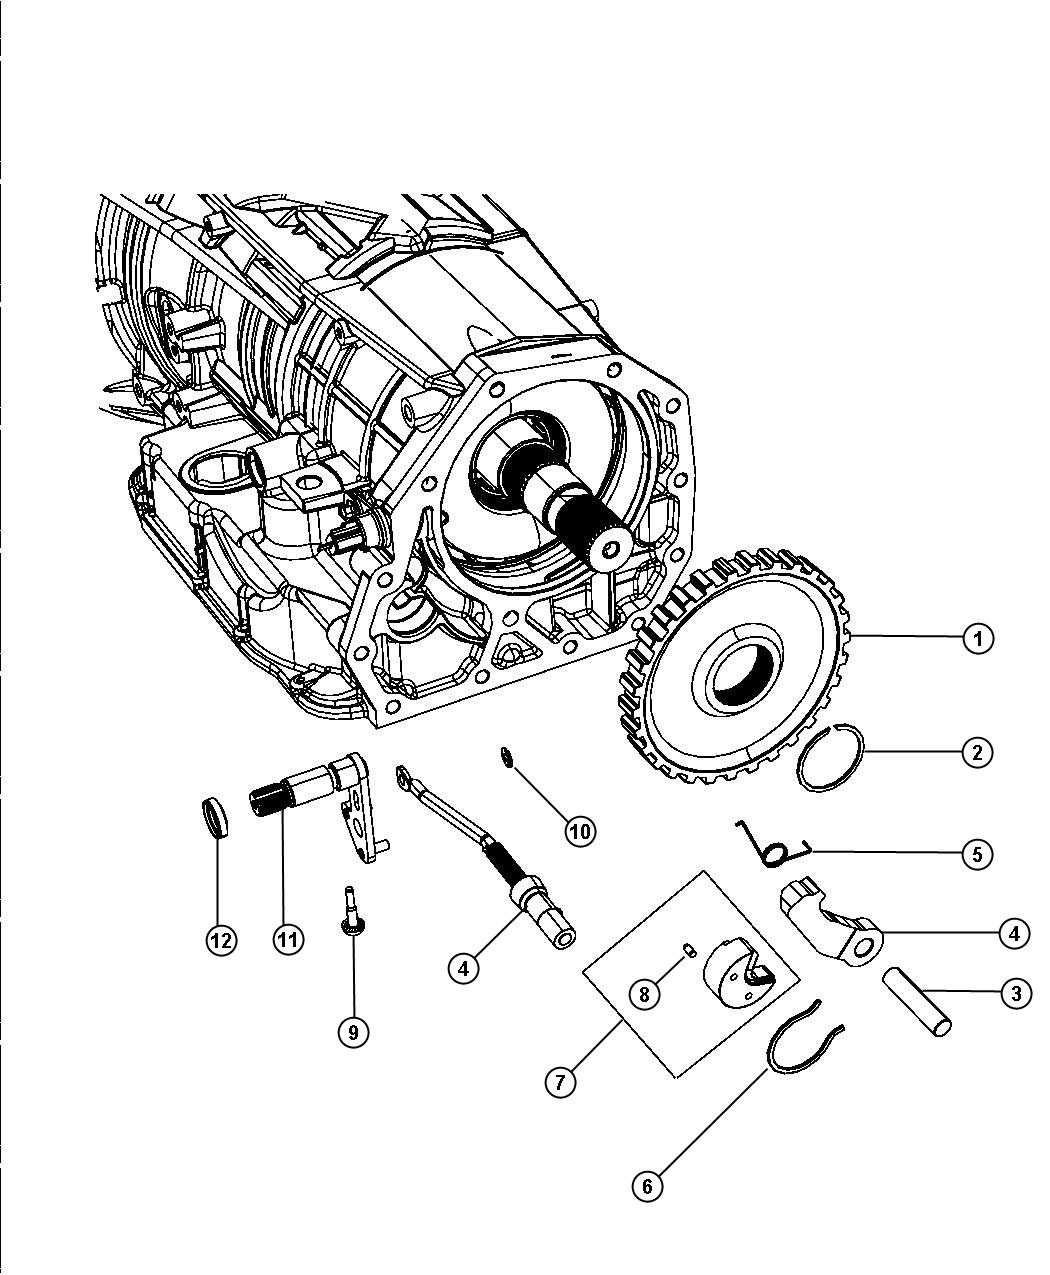 4r70w valve body diagram likewise 283541 likewise p 0900c152800a82d4 additionally watch also v rod wiring diagram